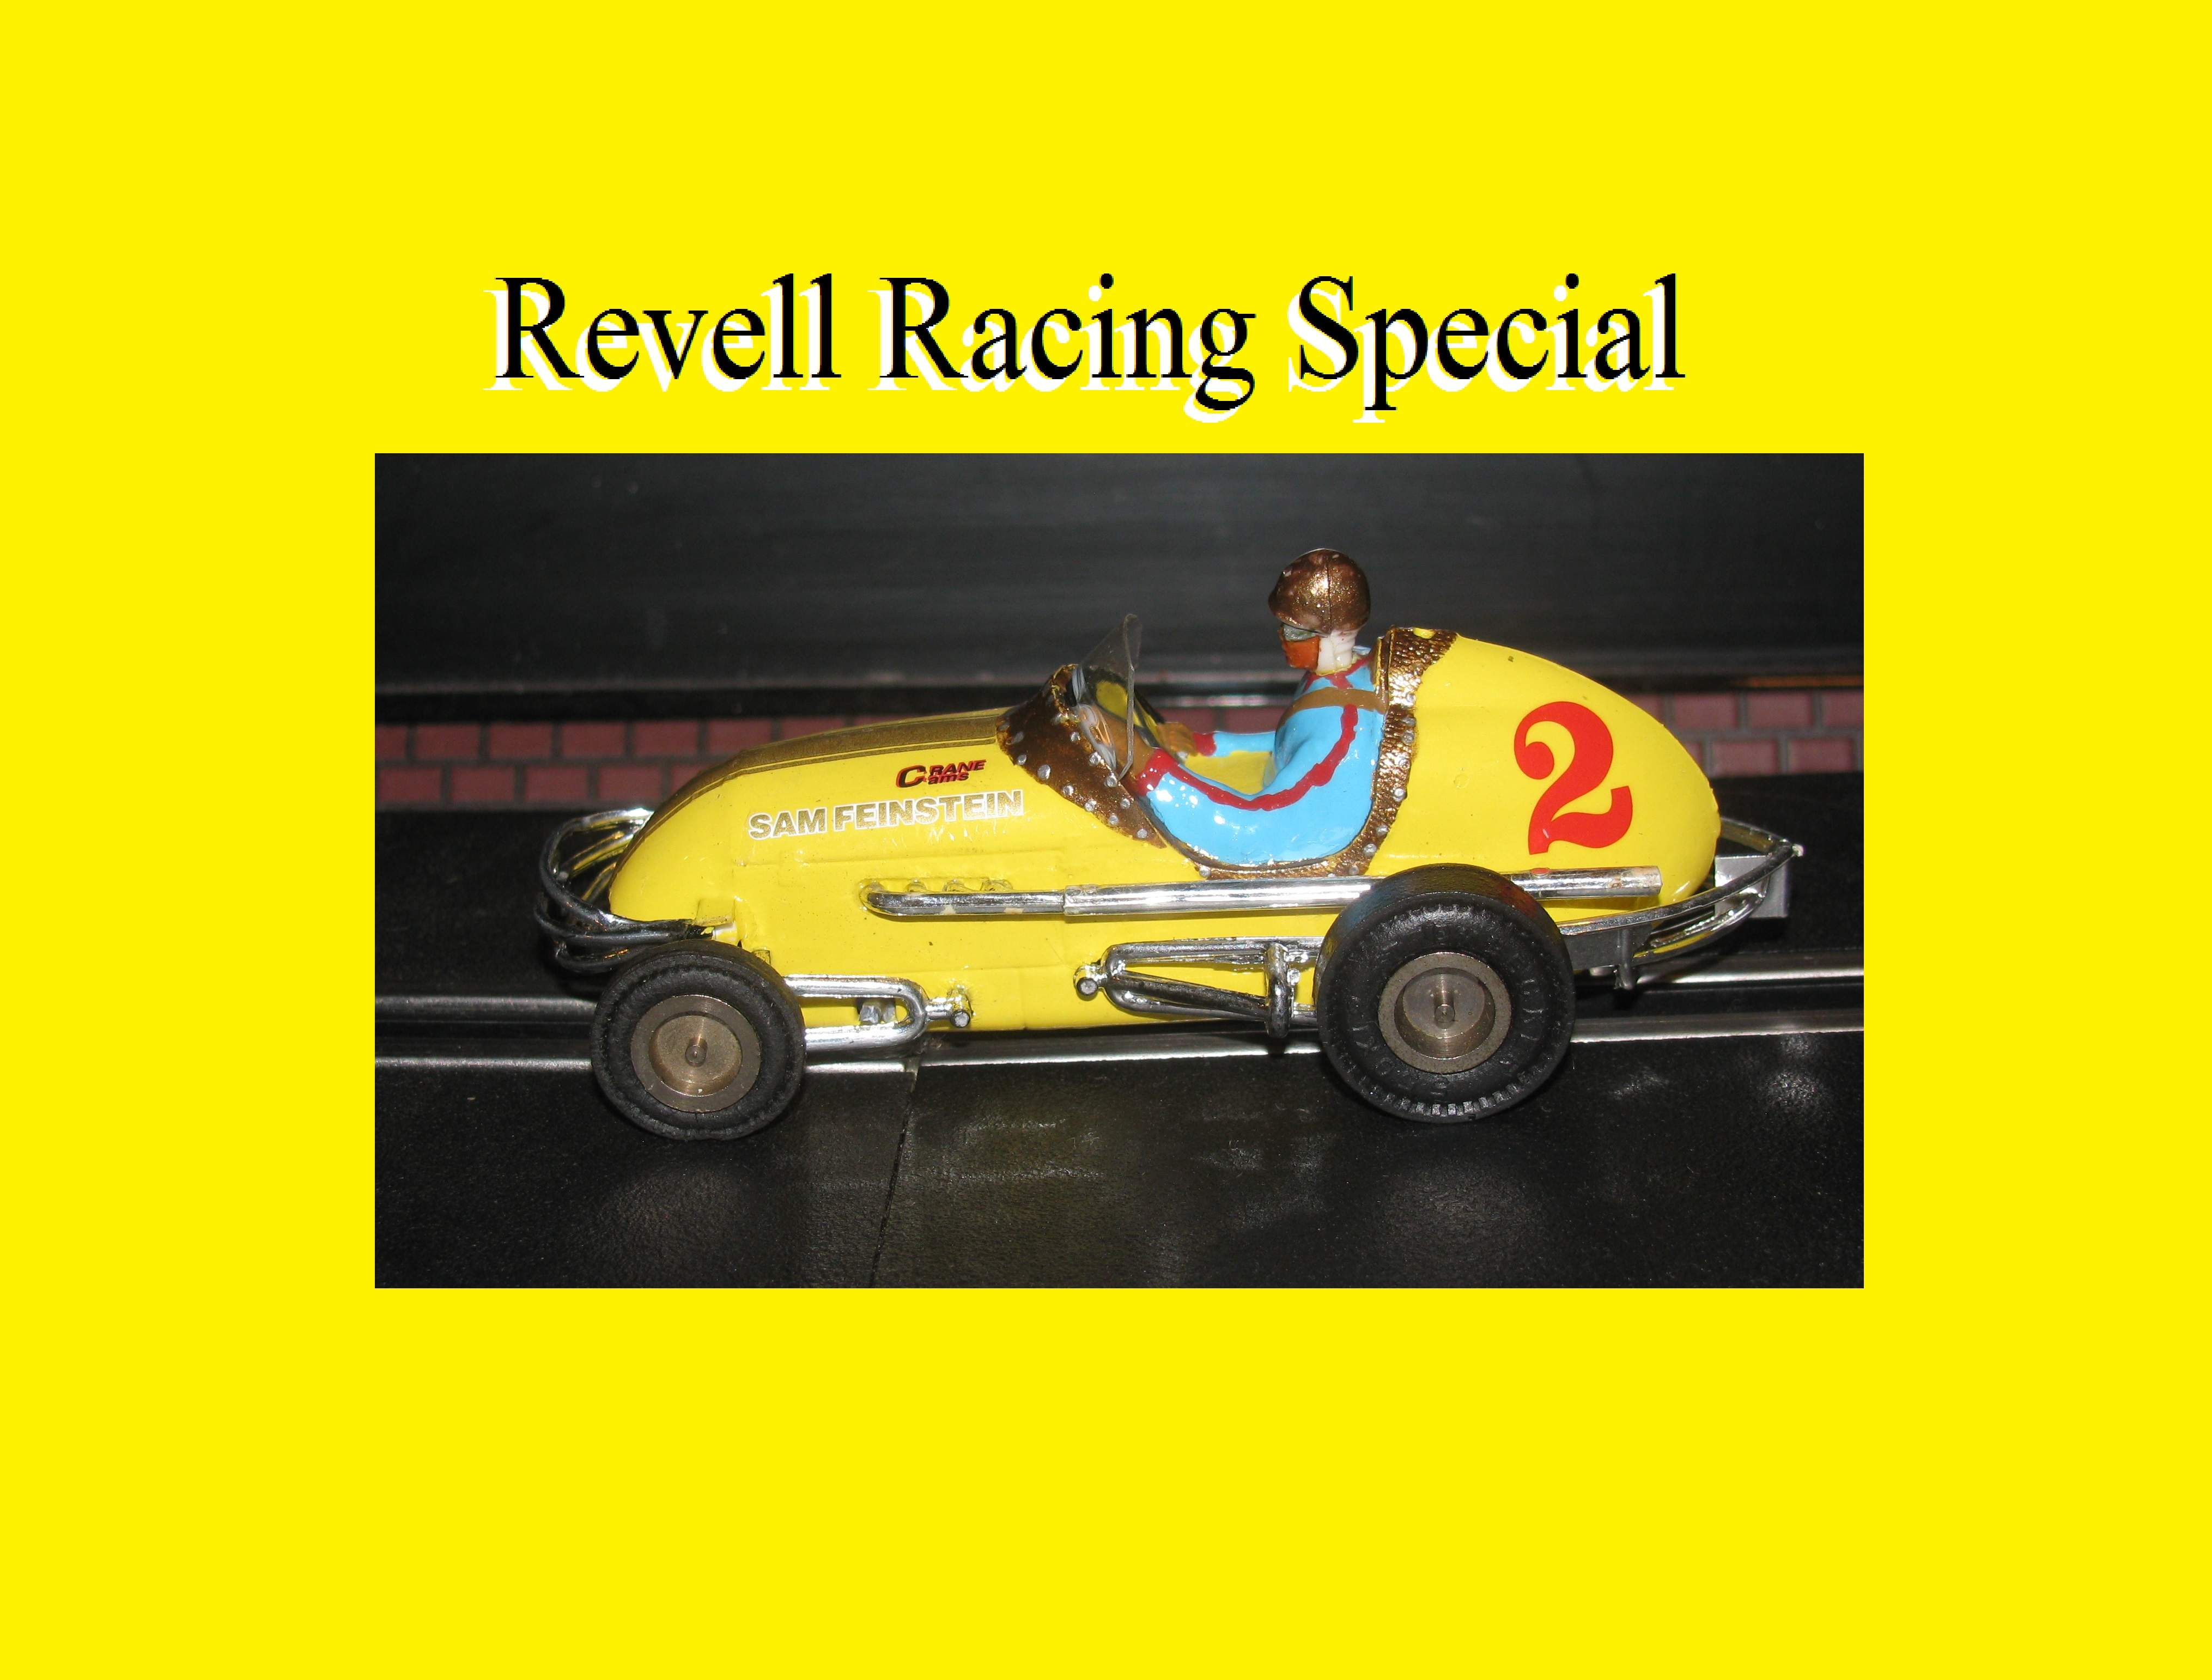 * SOLD * * FOR CHARLES E. ONLY * Revell Midget Racer Yellow Lightening Mini Racing Special Slot Car 1:32 Scale